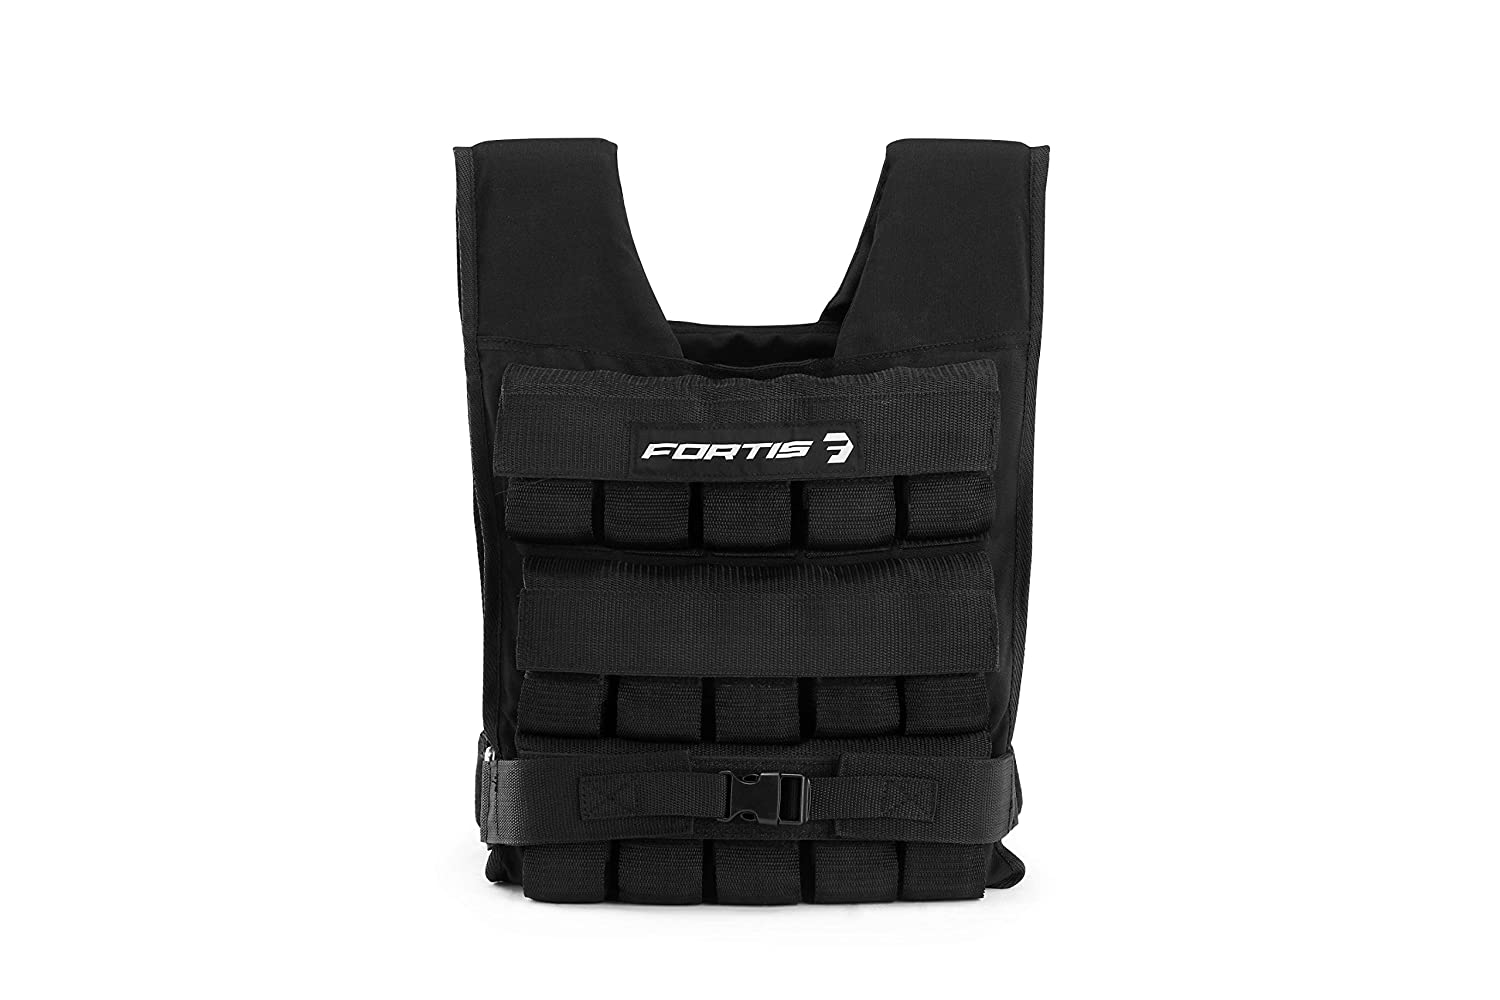 fortis weight vest 30kg amazon com au sports fitness outdoors